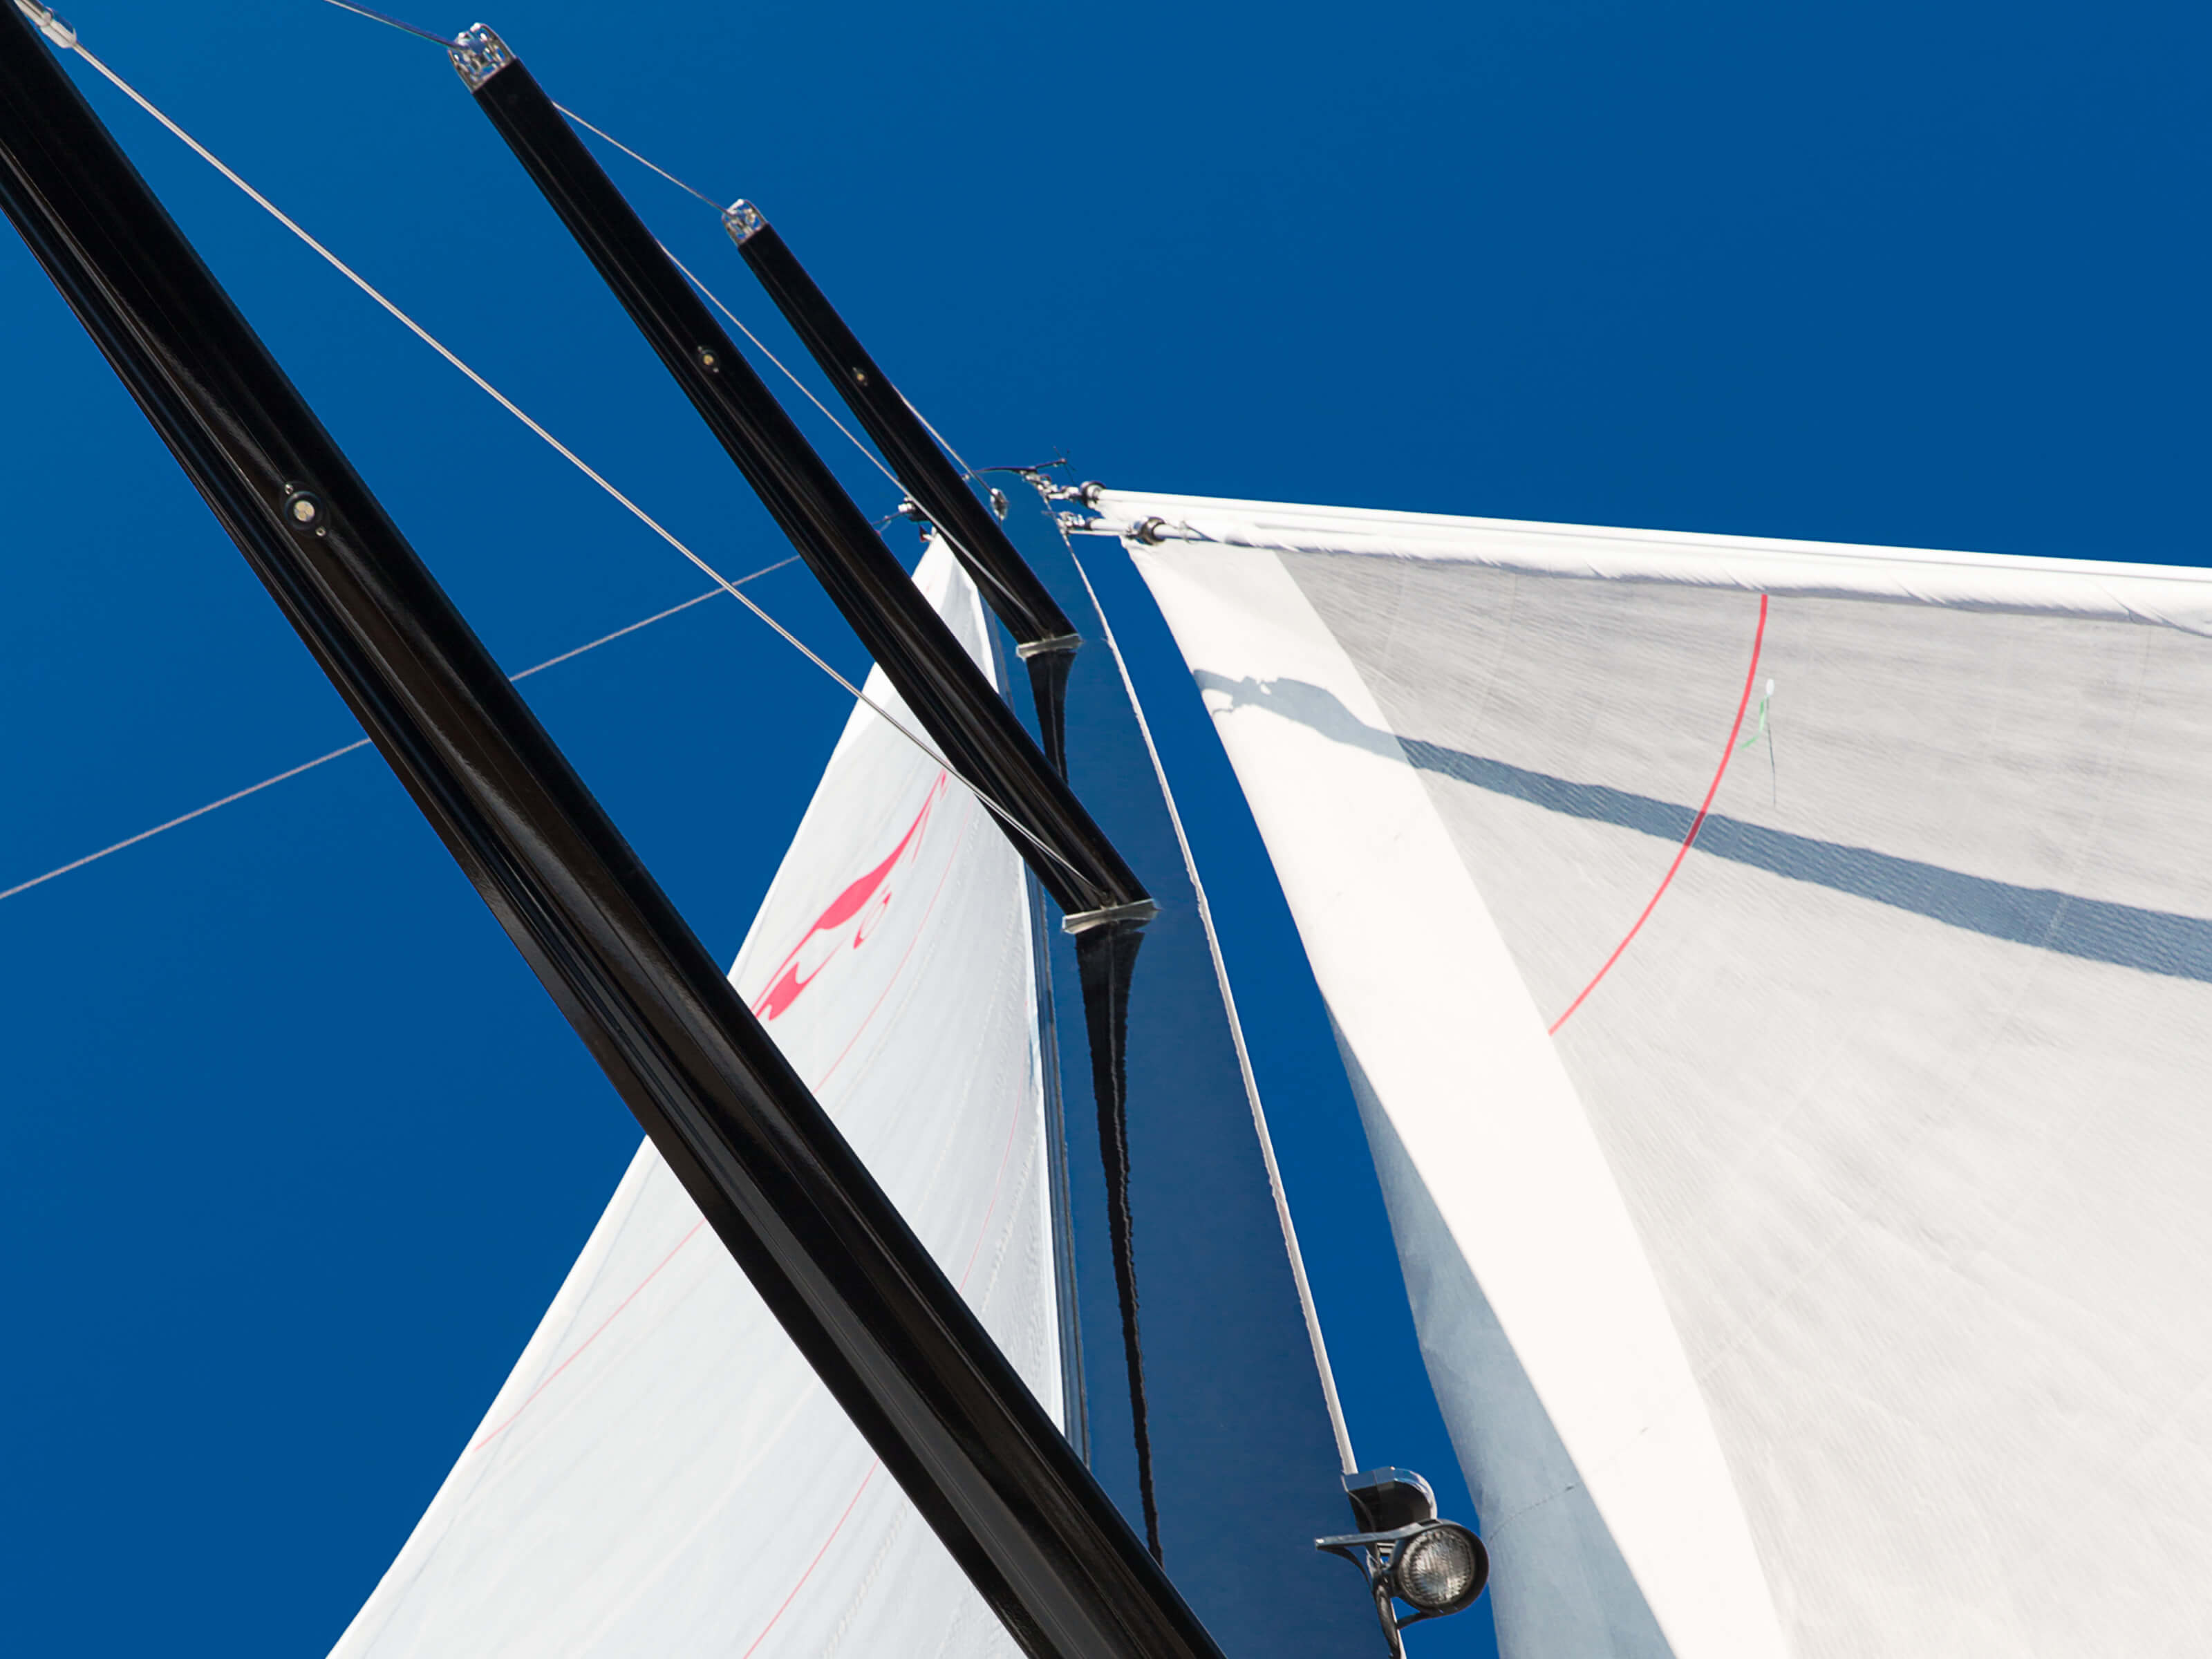 Hanse 675 | Mast, spreaders, mainsail | Hanse